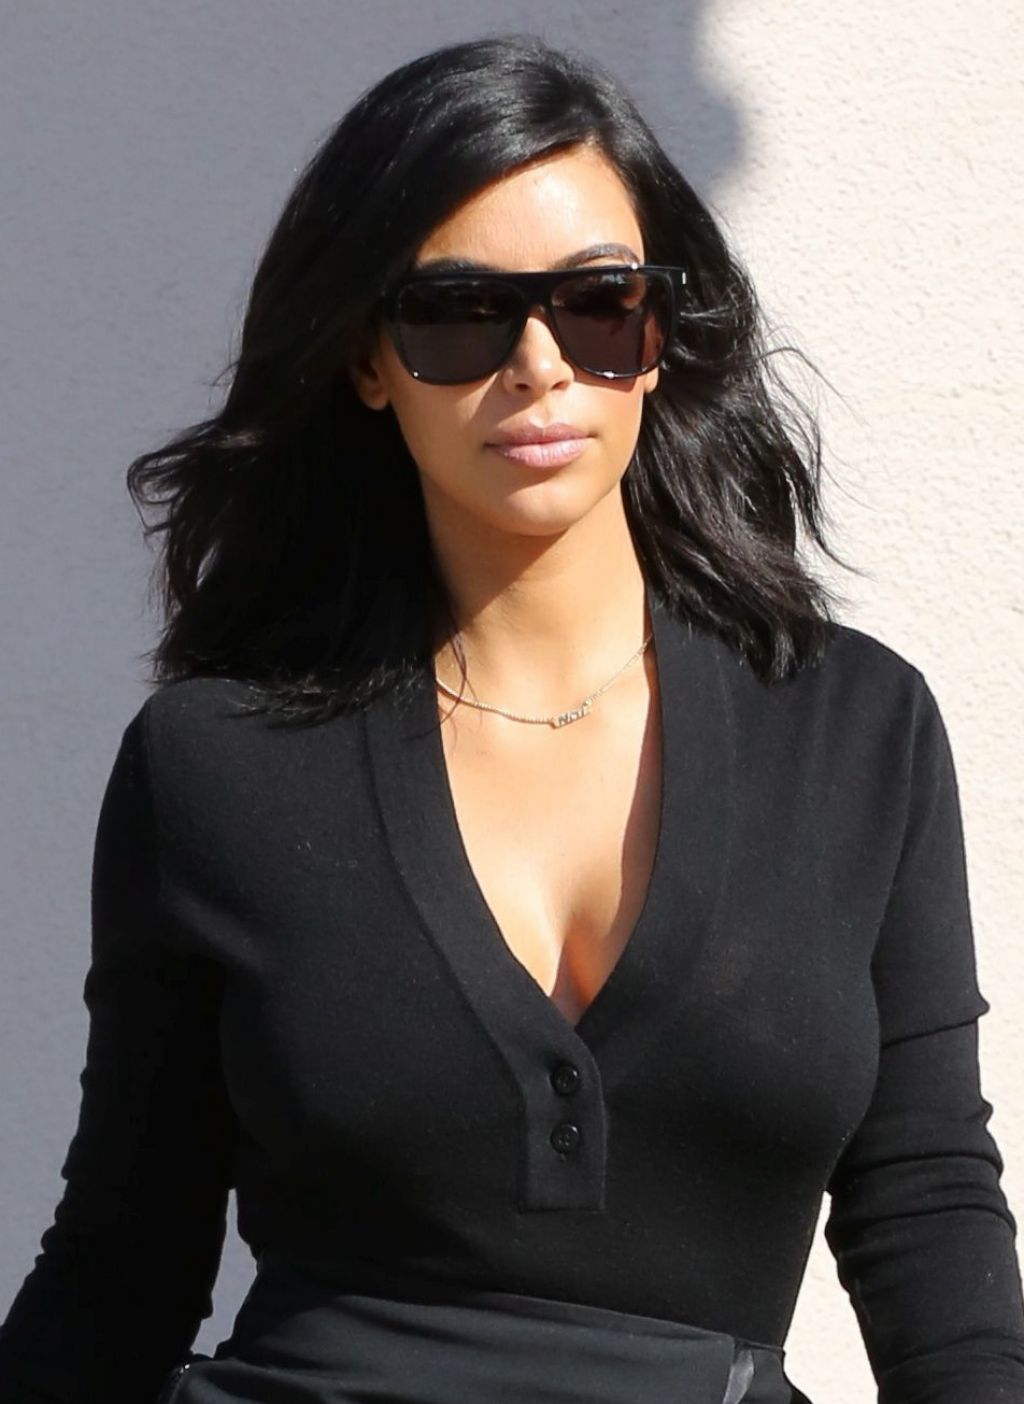 Kim Kardashian Style – Filming in Westlake Village, February 2015